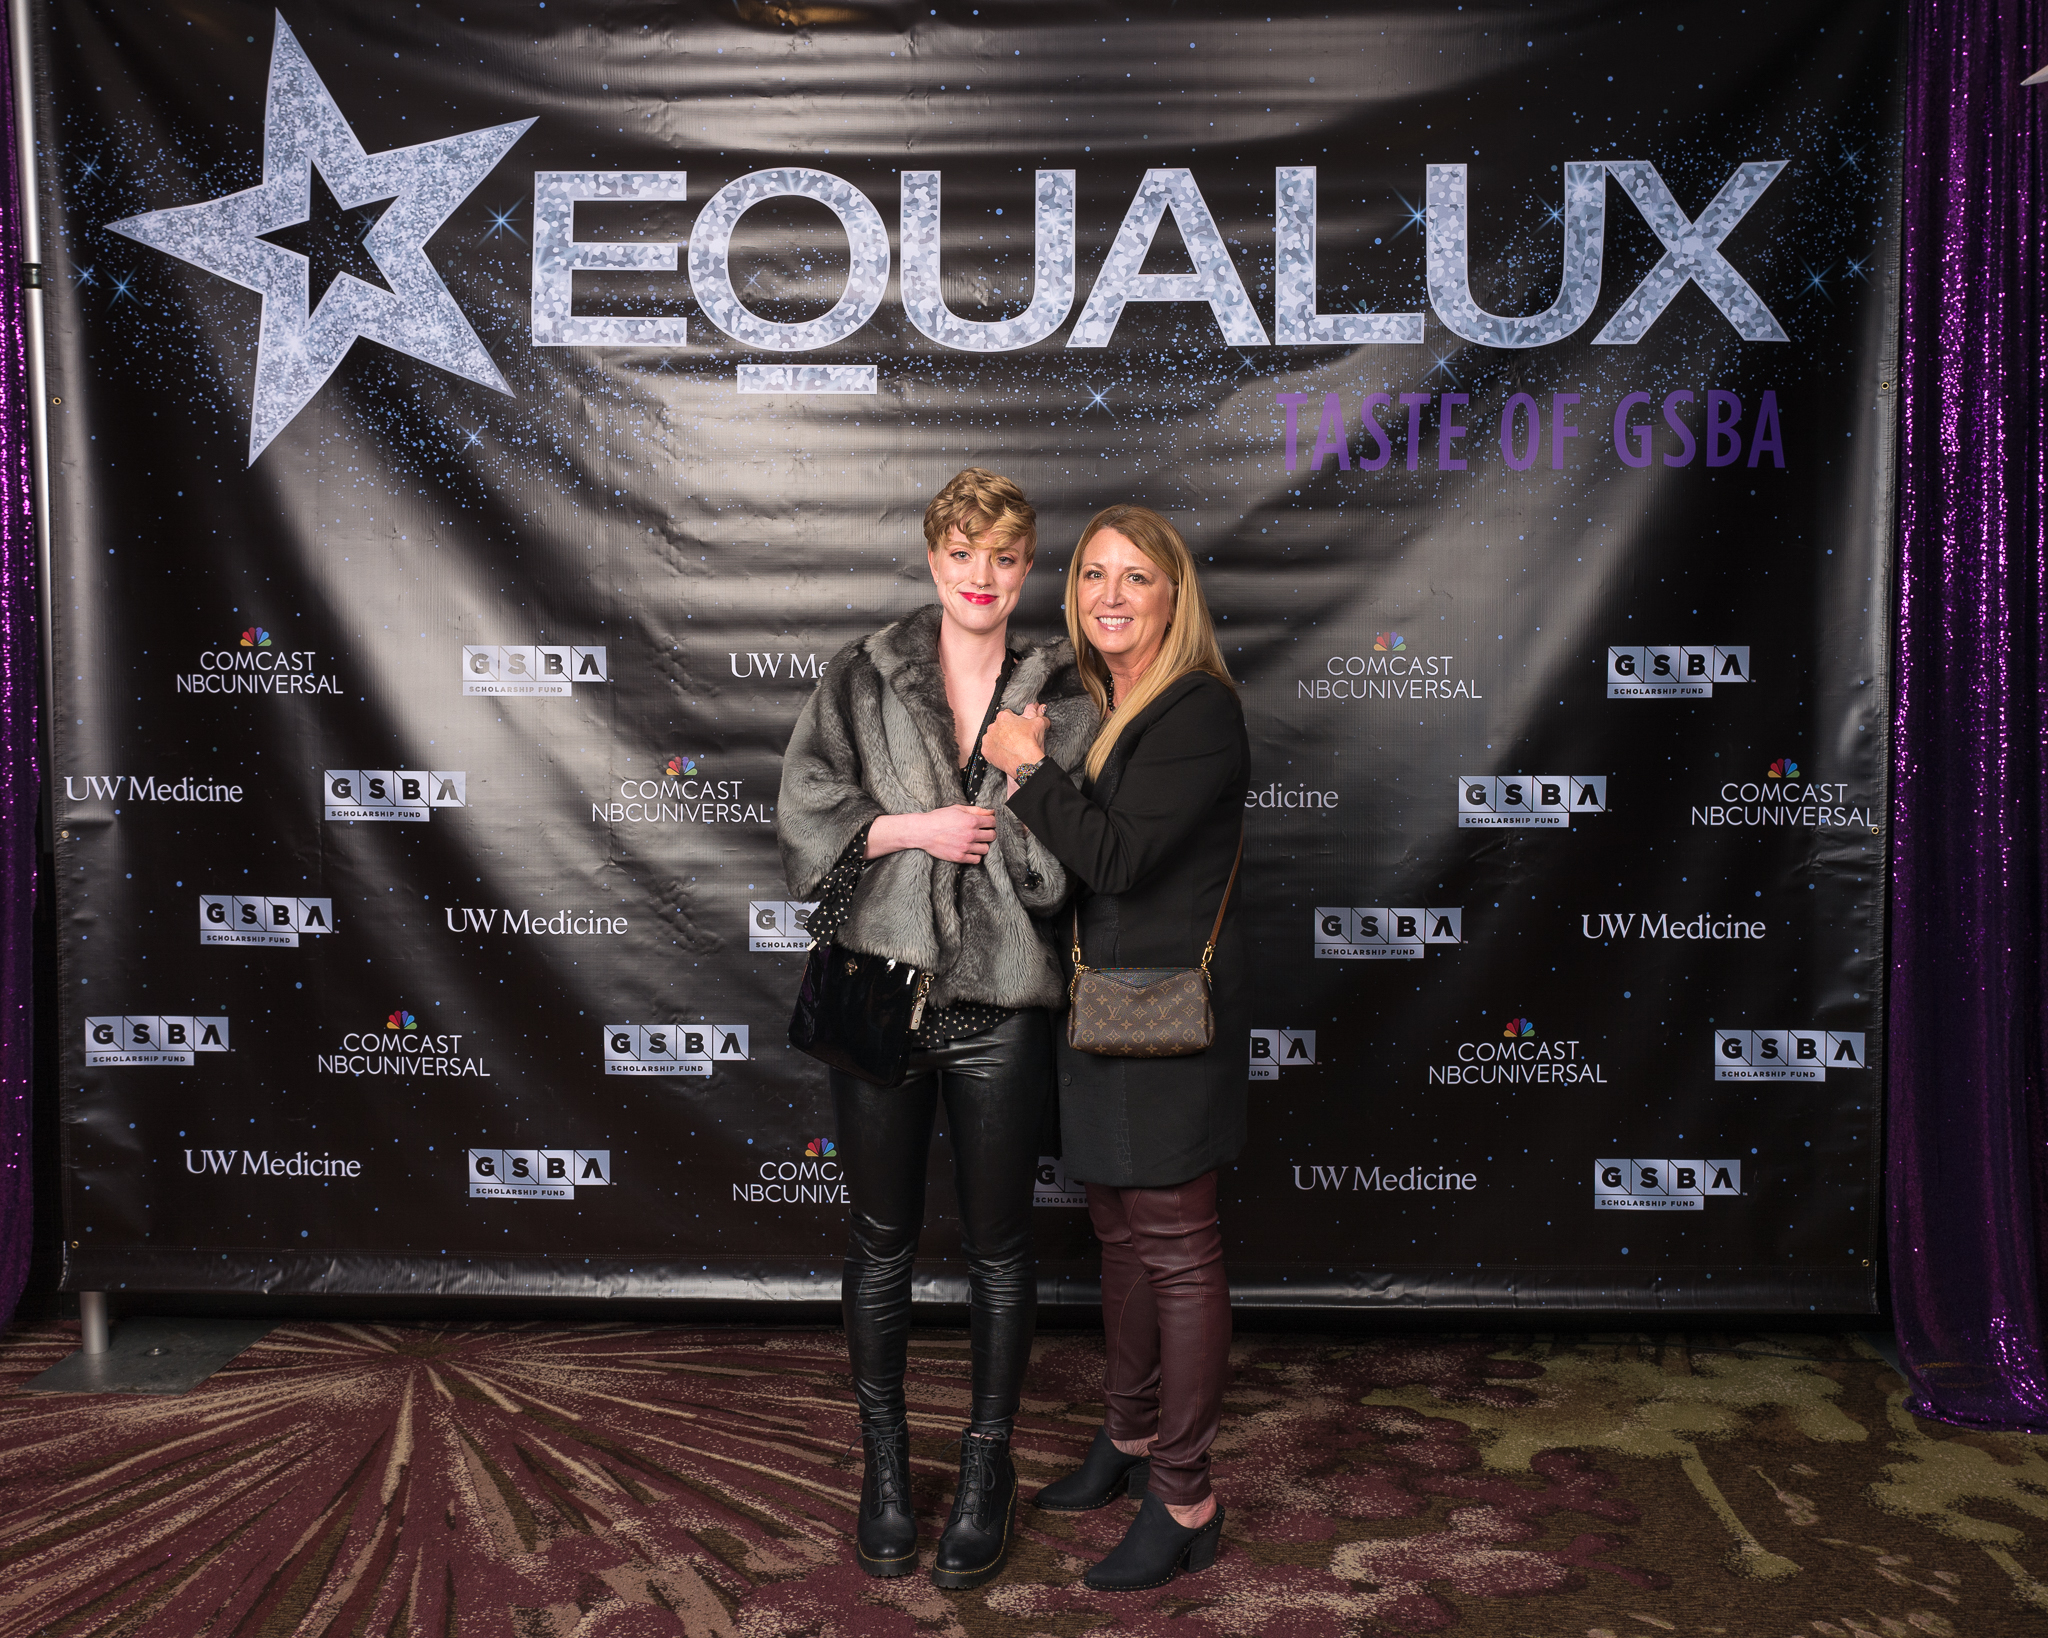 111718_GSBA EQUALUX at The Westin Seattle (Credit- Nate Gowdy)-48.jpg